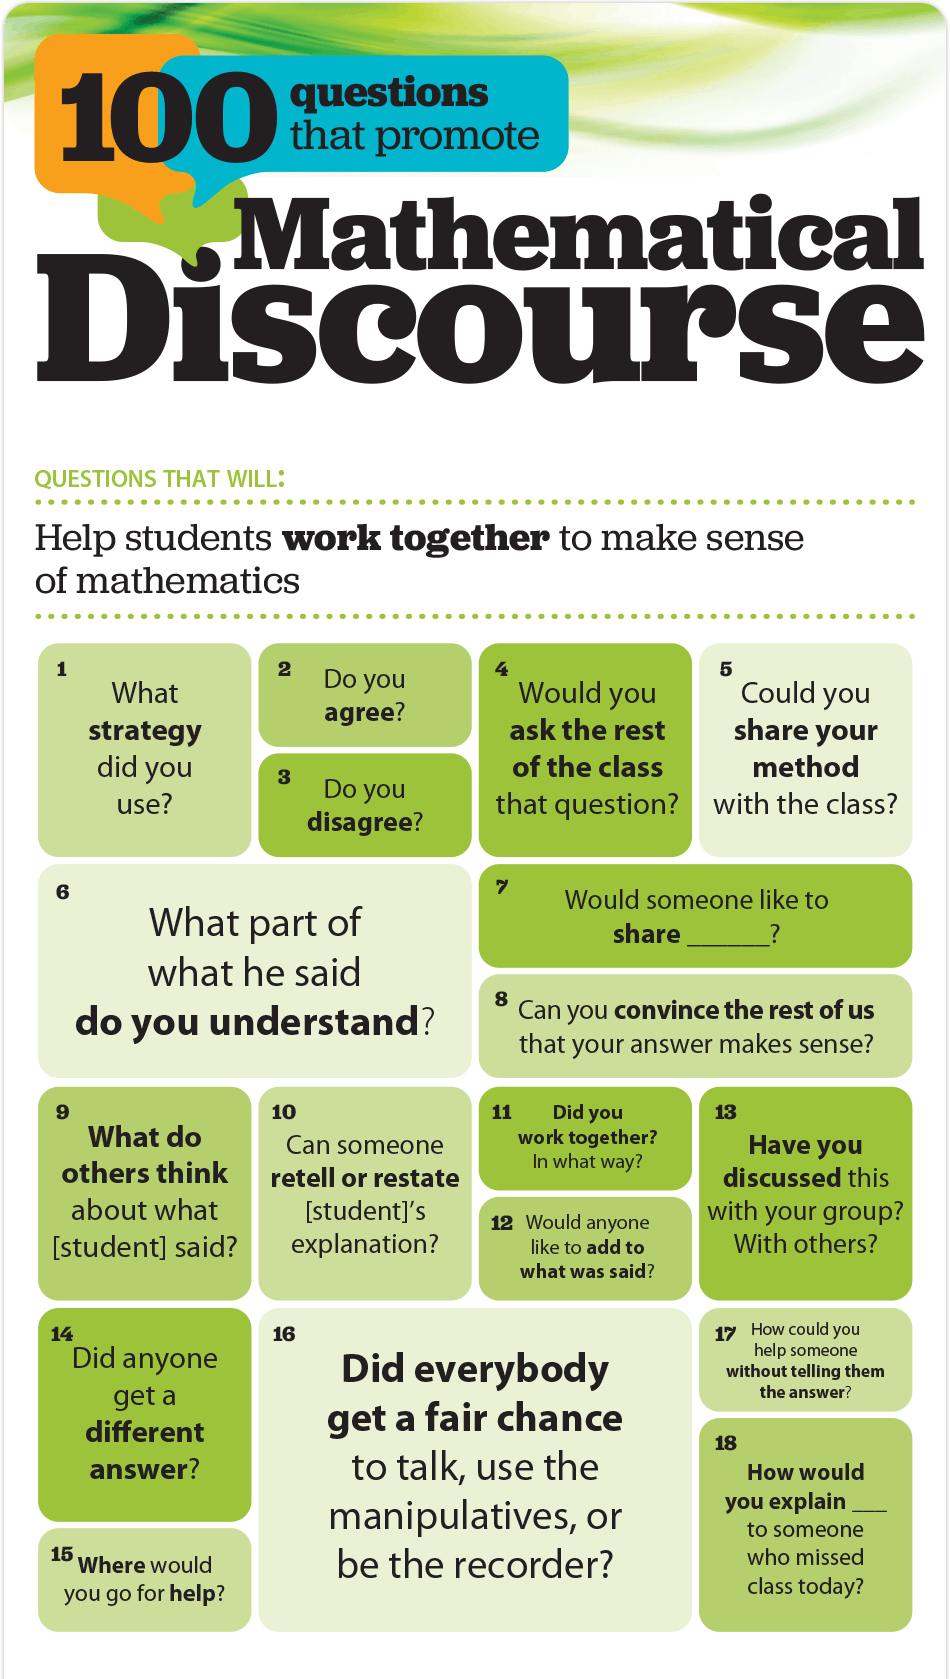 talking math 100 questions that help promote mathematical discourse ccs 19925 100mathdiscousequestions infographic slice 01